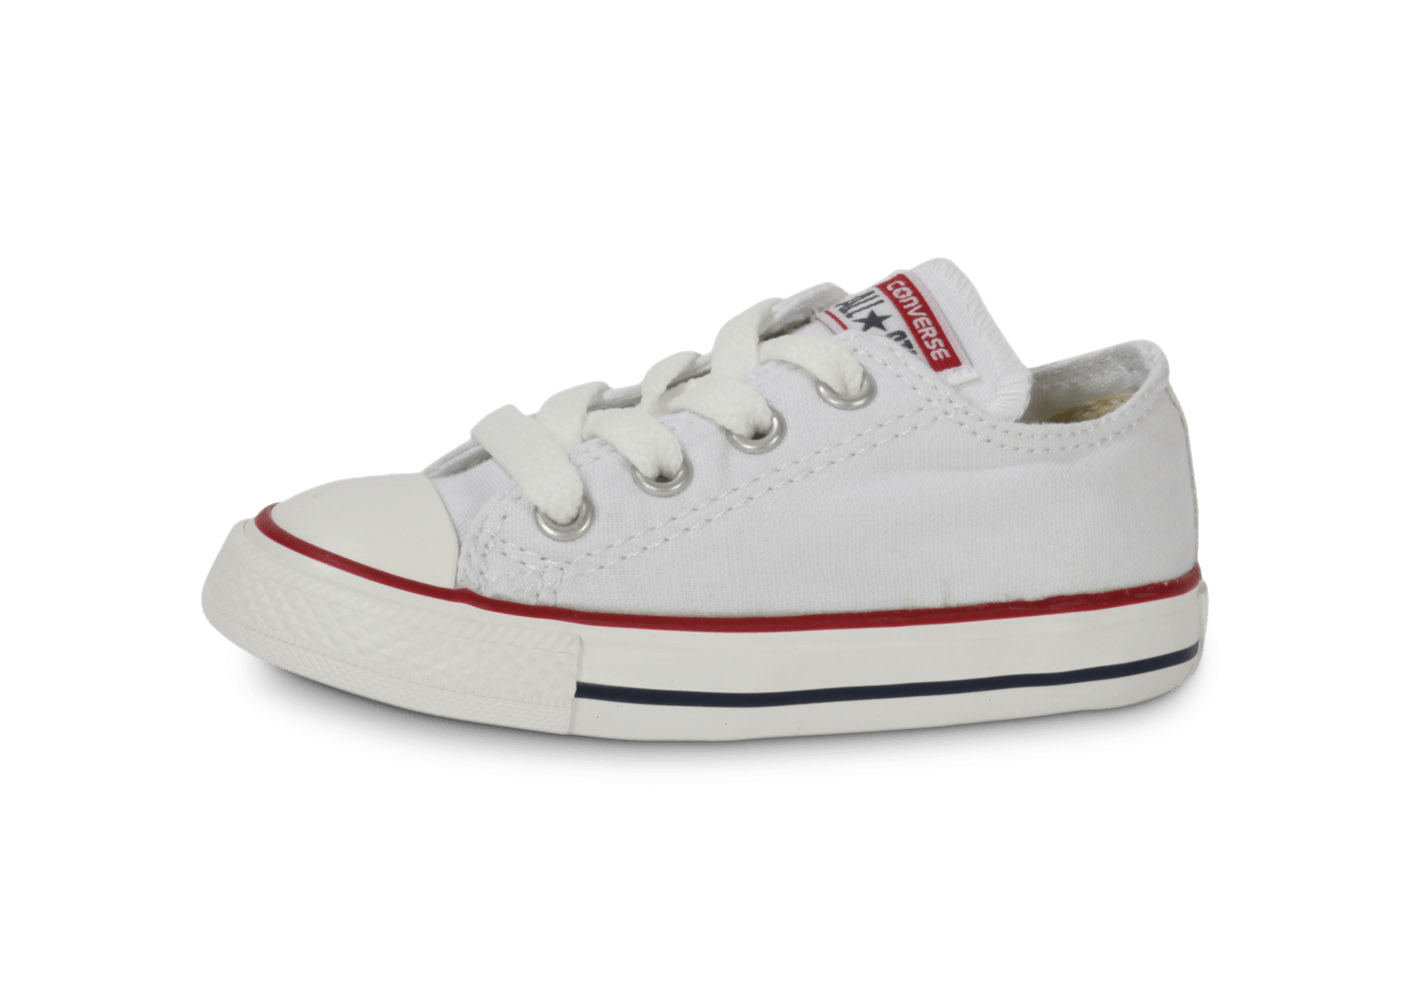 Chaussures Converse Fille Pas Cher